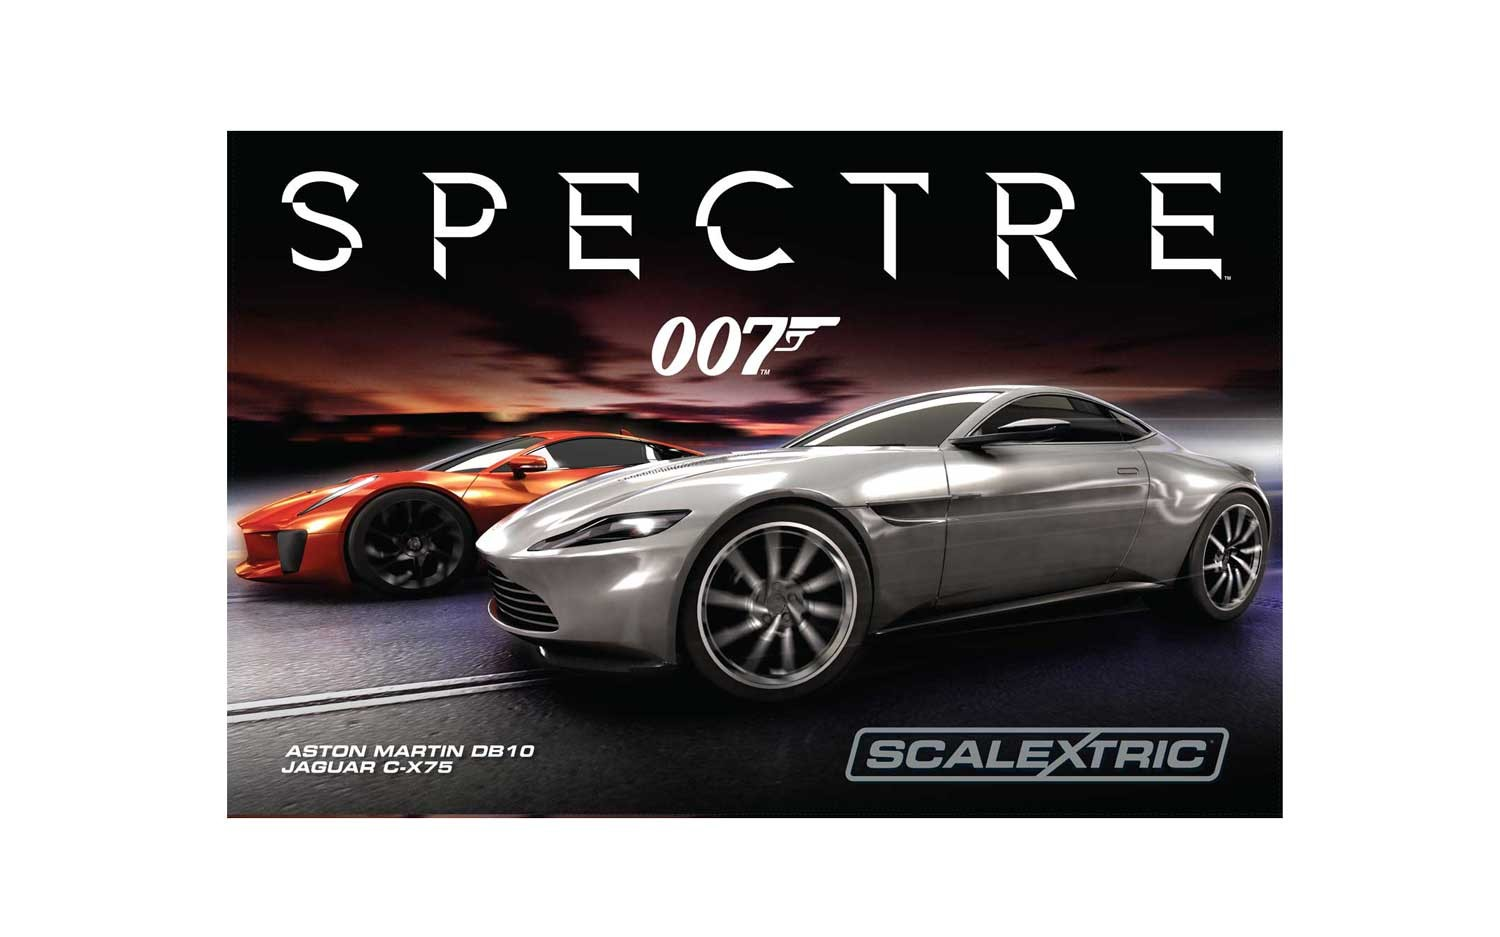 SPORT - James Bond - SPECTRE Set